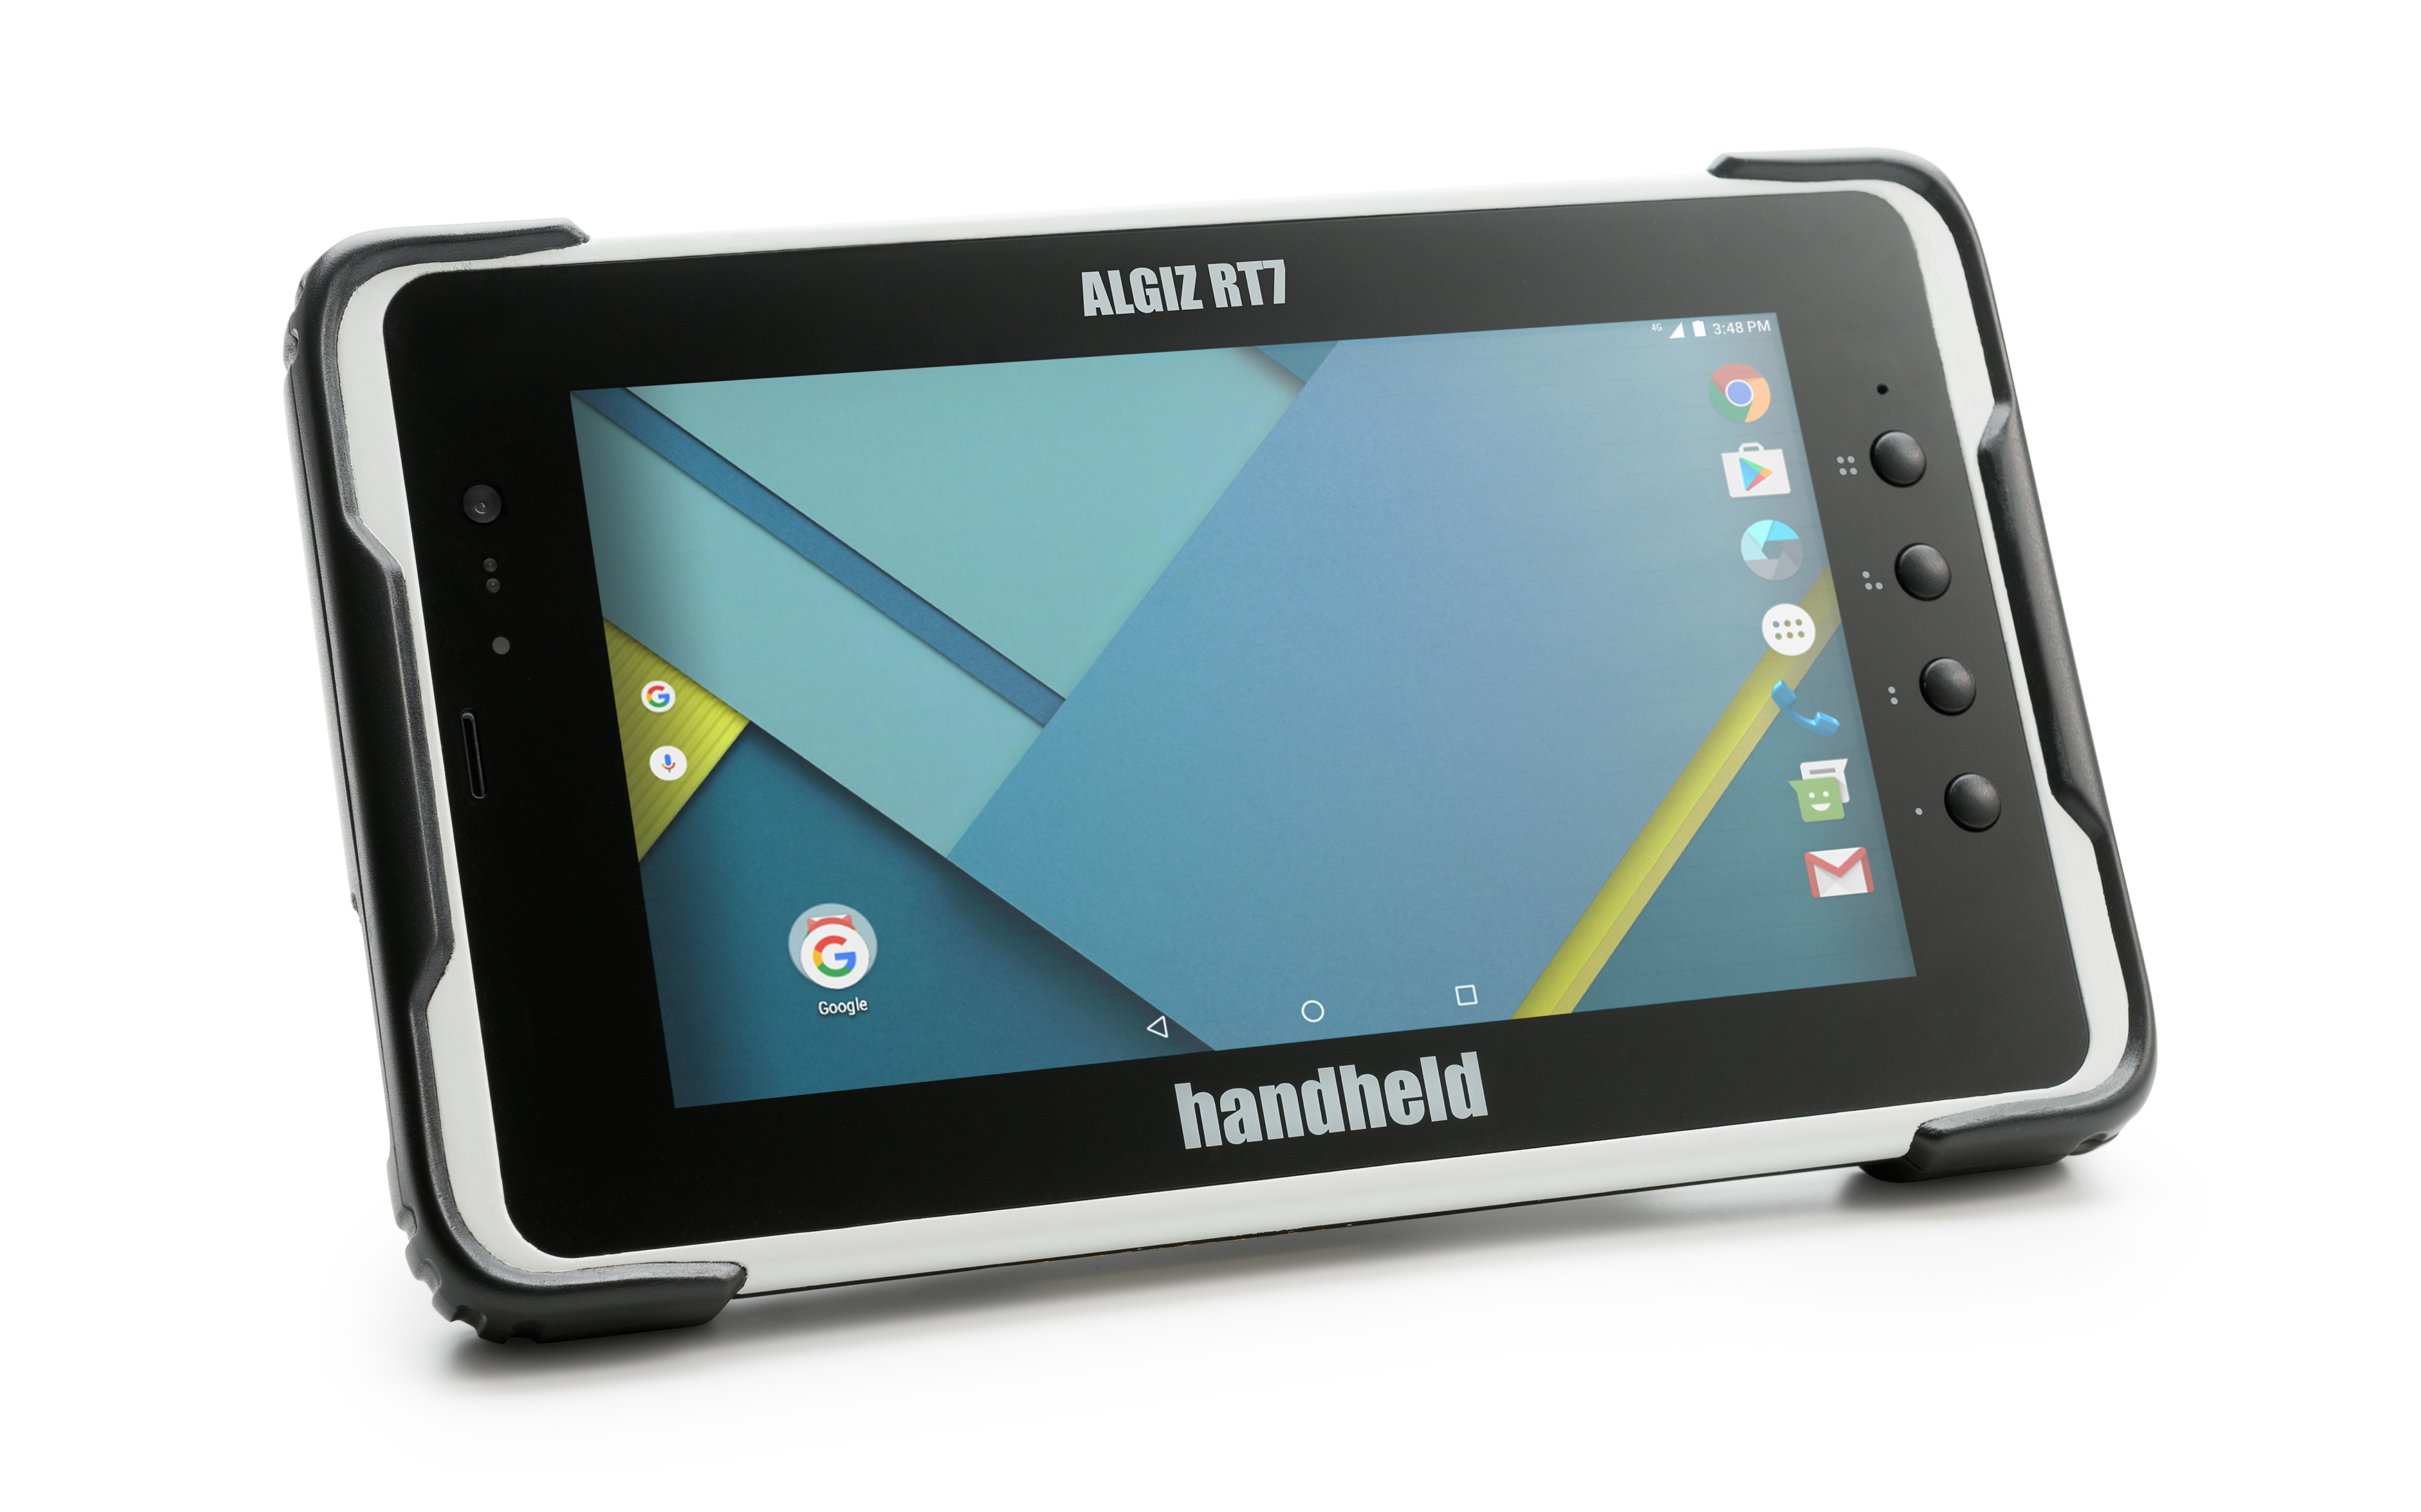 algiz-rt7-handheld-tablet